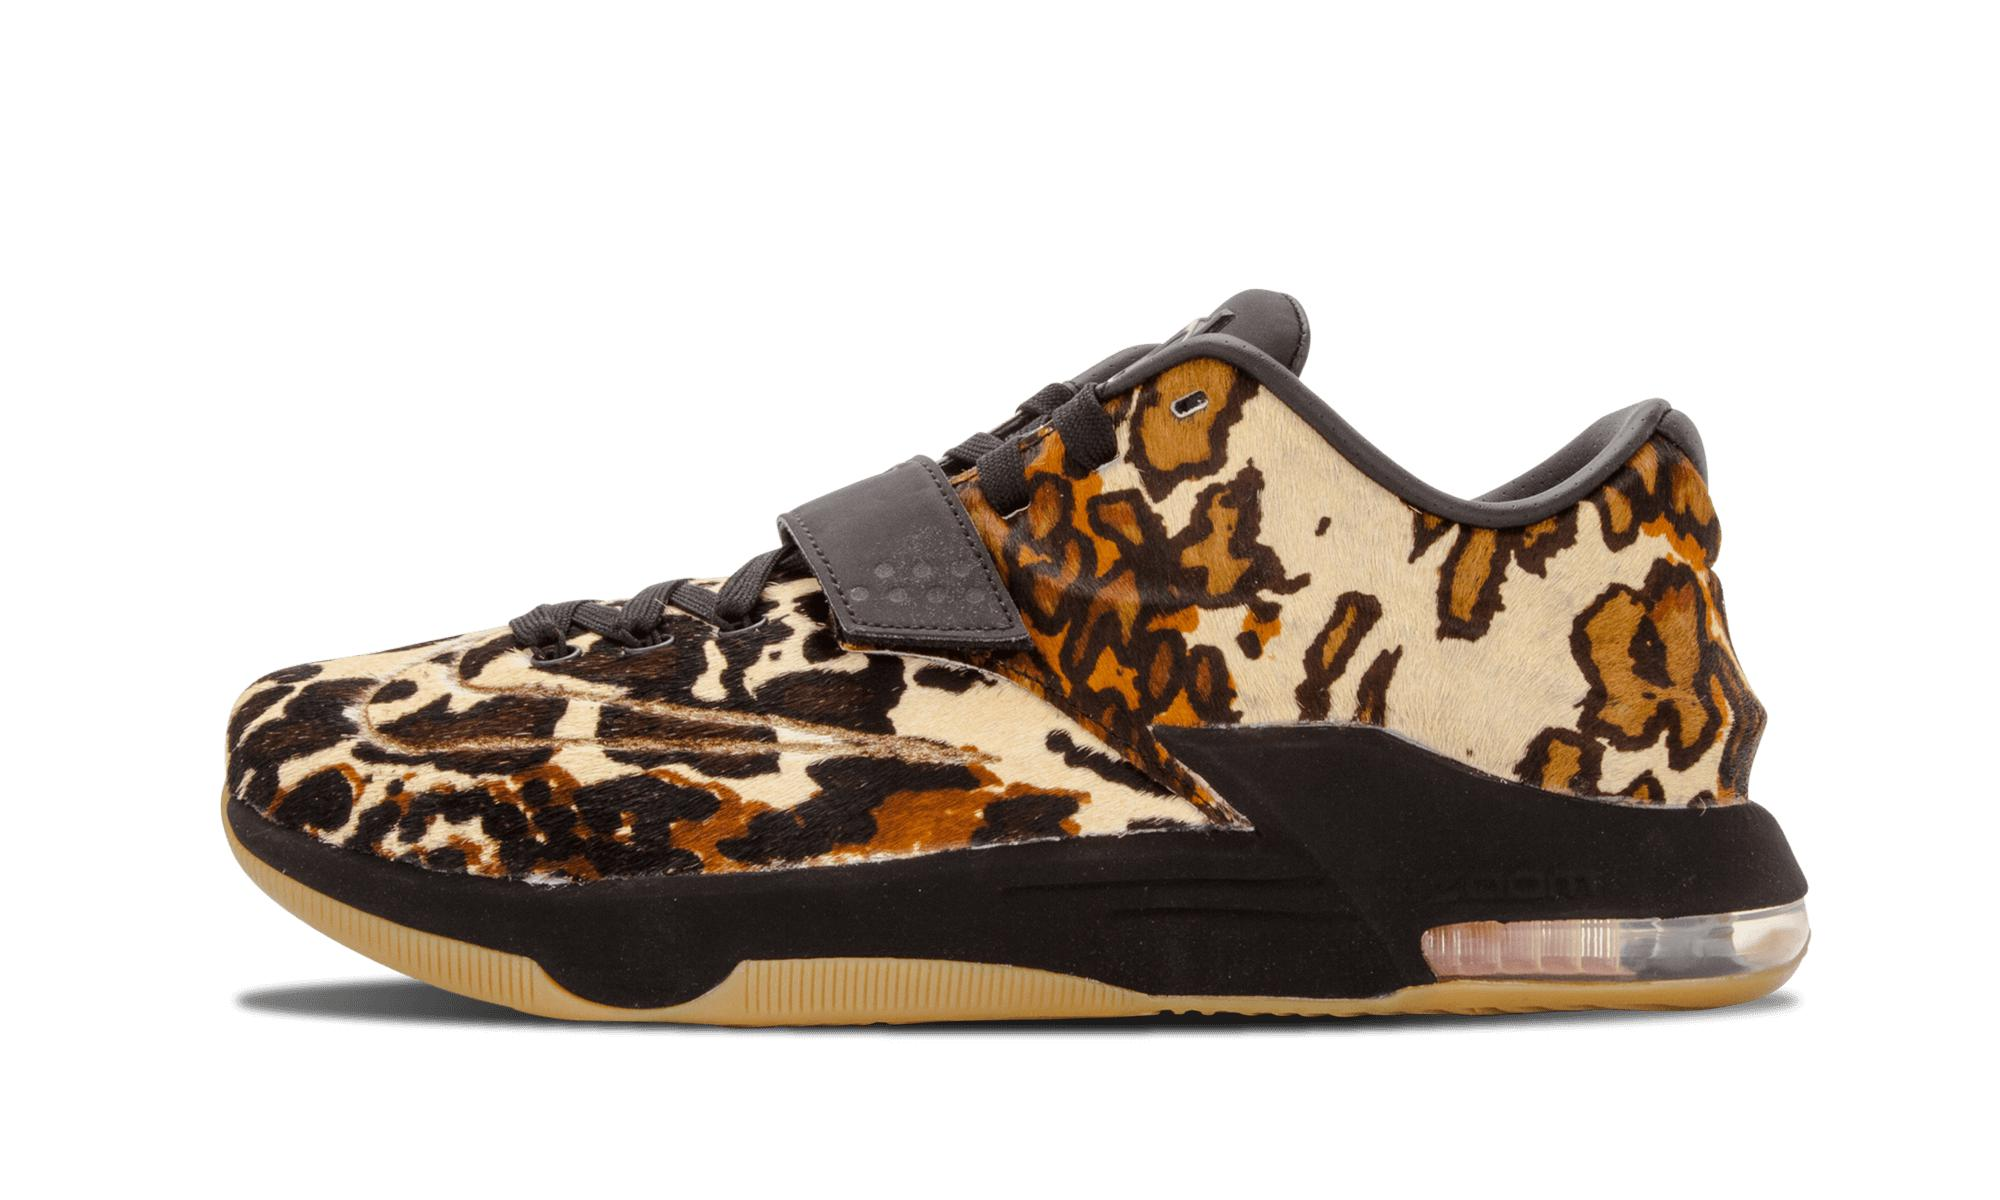 367797c8d39e Nike Kd 7 Ext Qs in Black for Men - Lyst